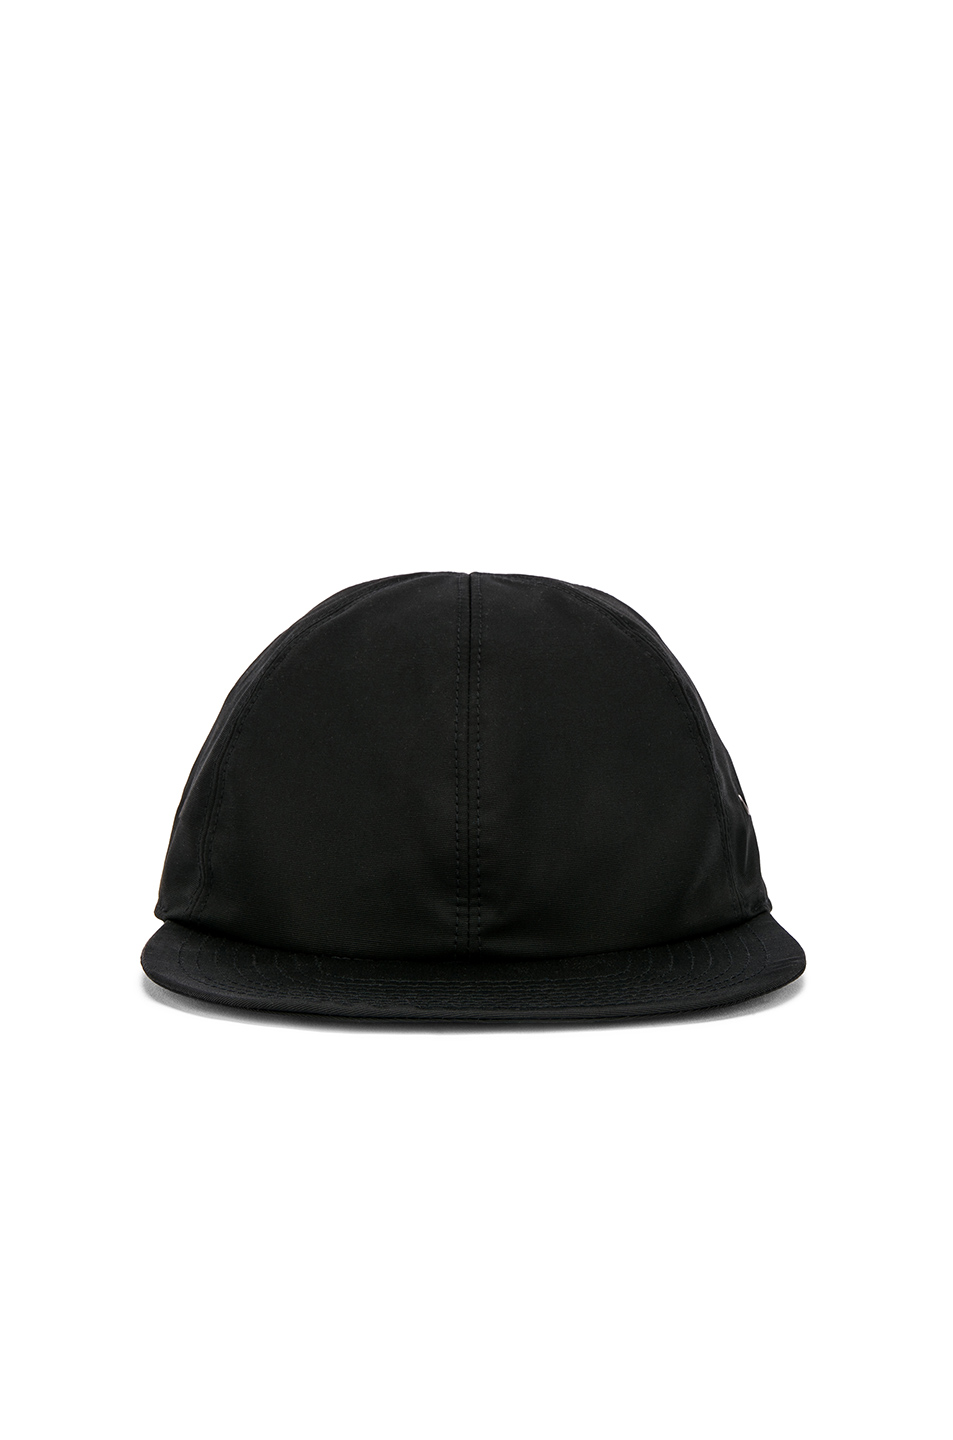 a0882f0bf009a Alyx 1017 9Sm Baseball Cap With Buckle In Black